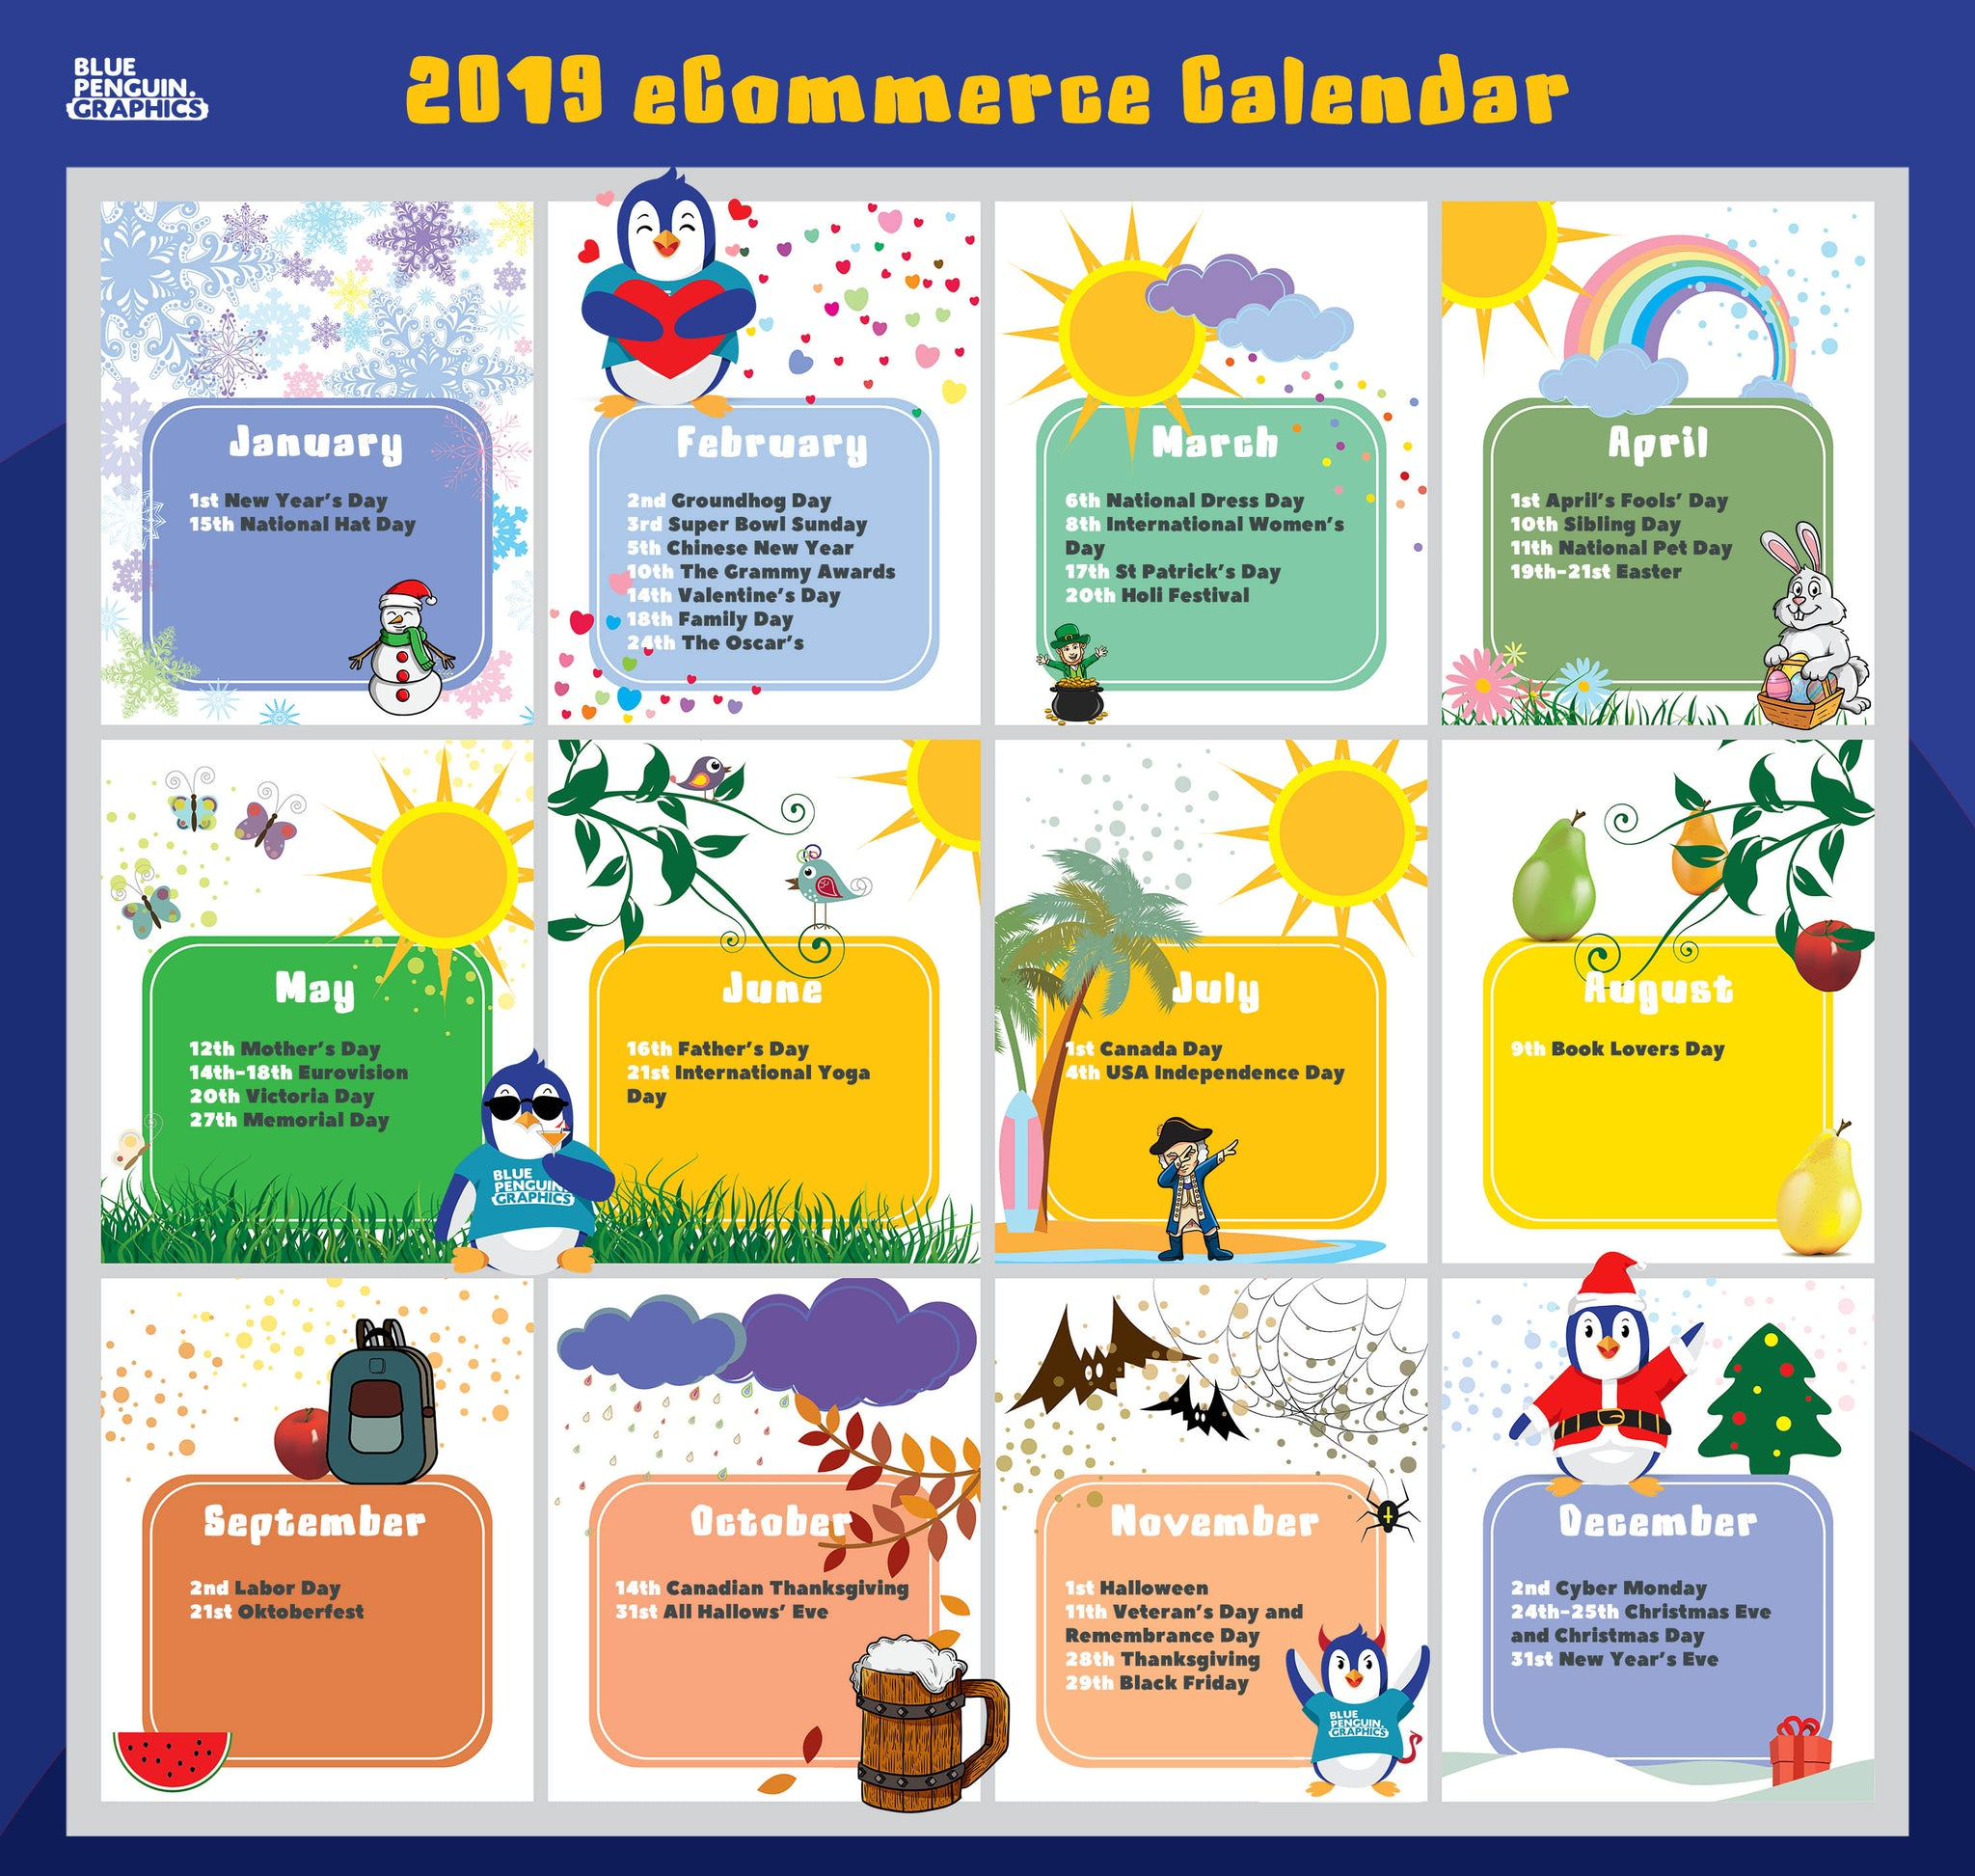 Ecommerce Holiday Calendar For 2019